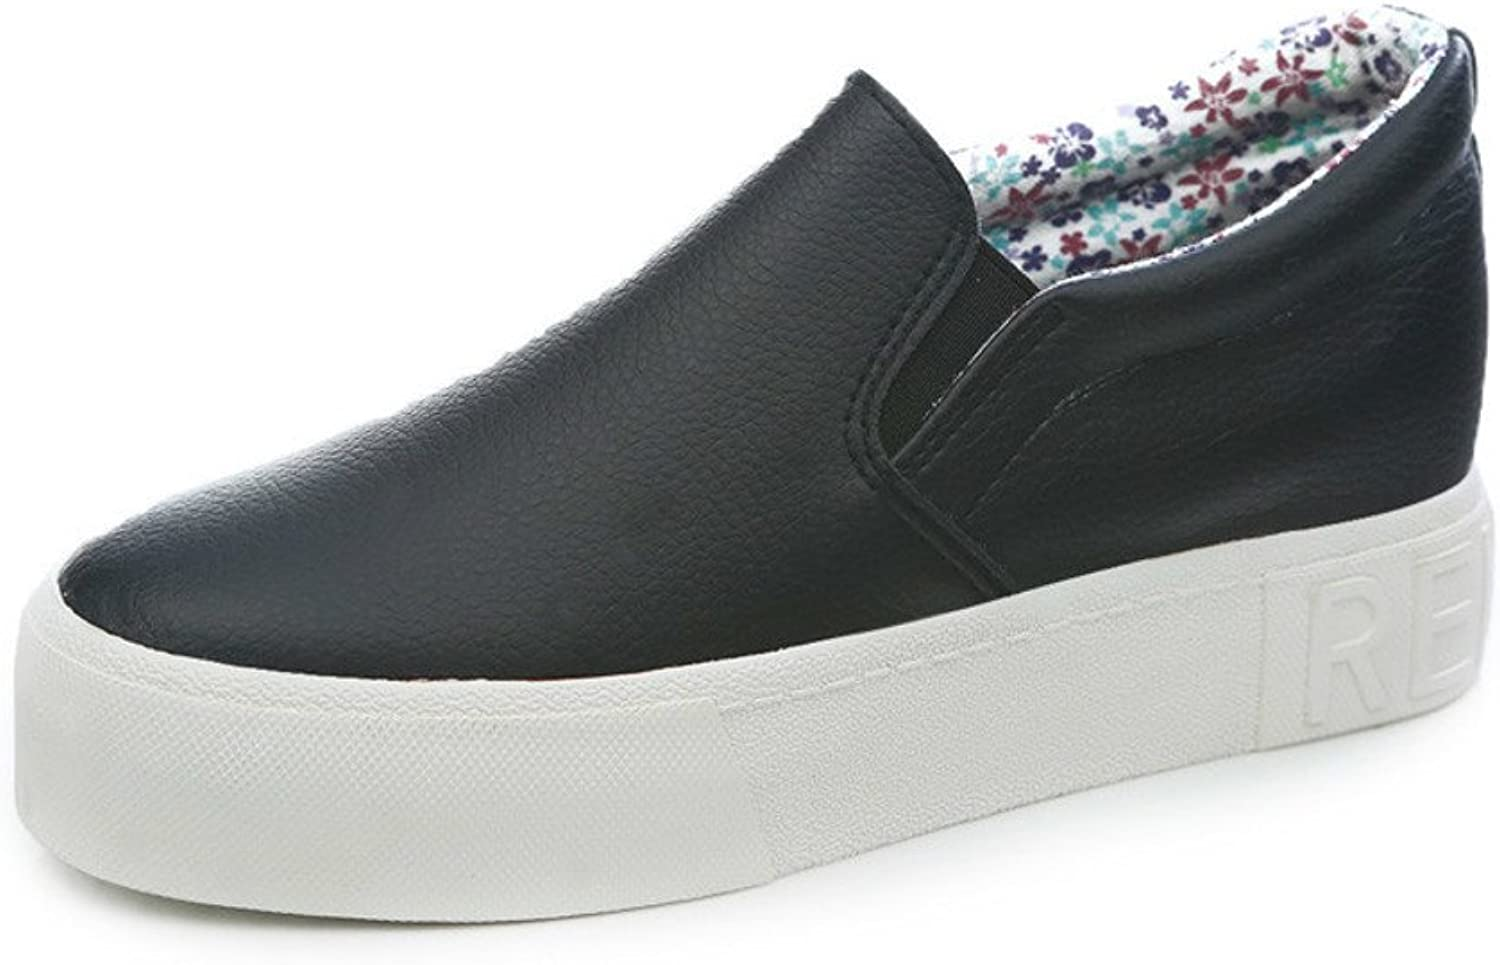 WLJSLLZYQ Summer Cake with Thick end of Lok Fu shoes Micro Fiber one Pedal Students Flat Casual shoes